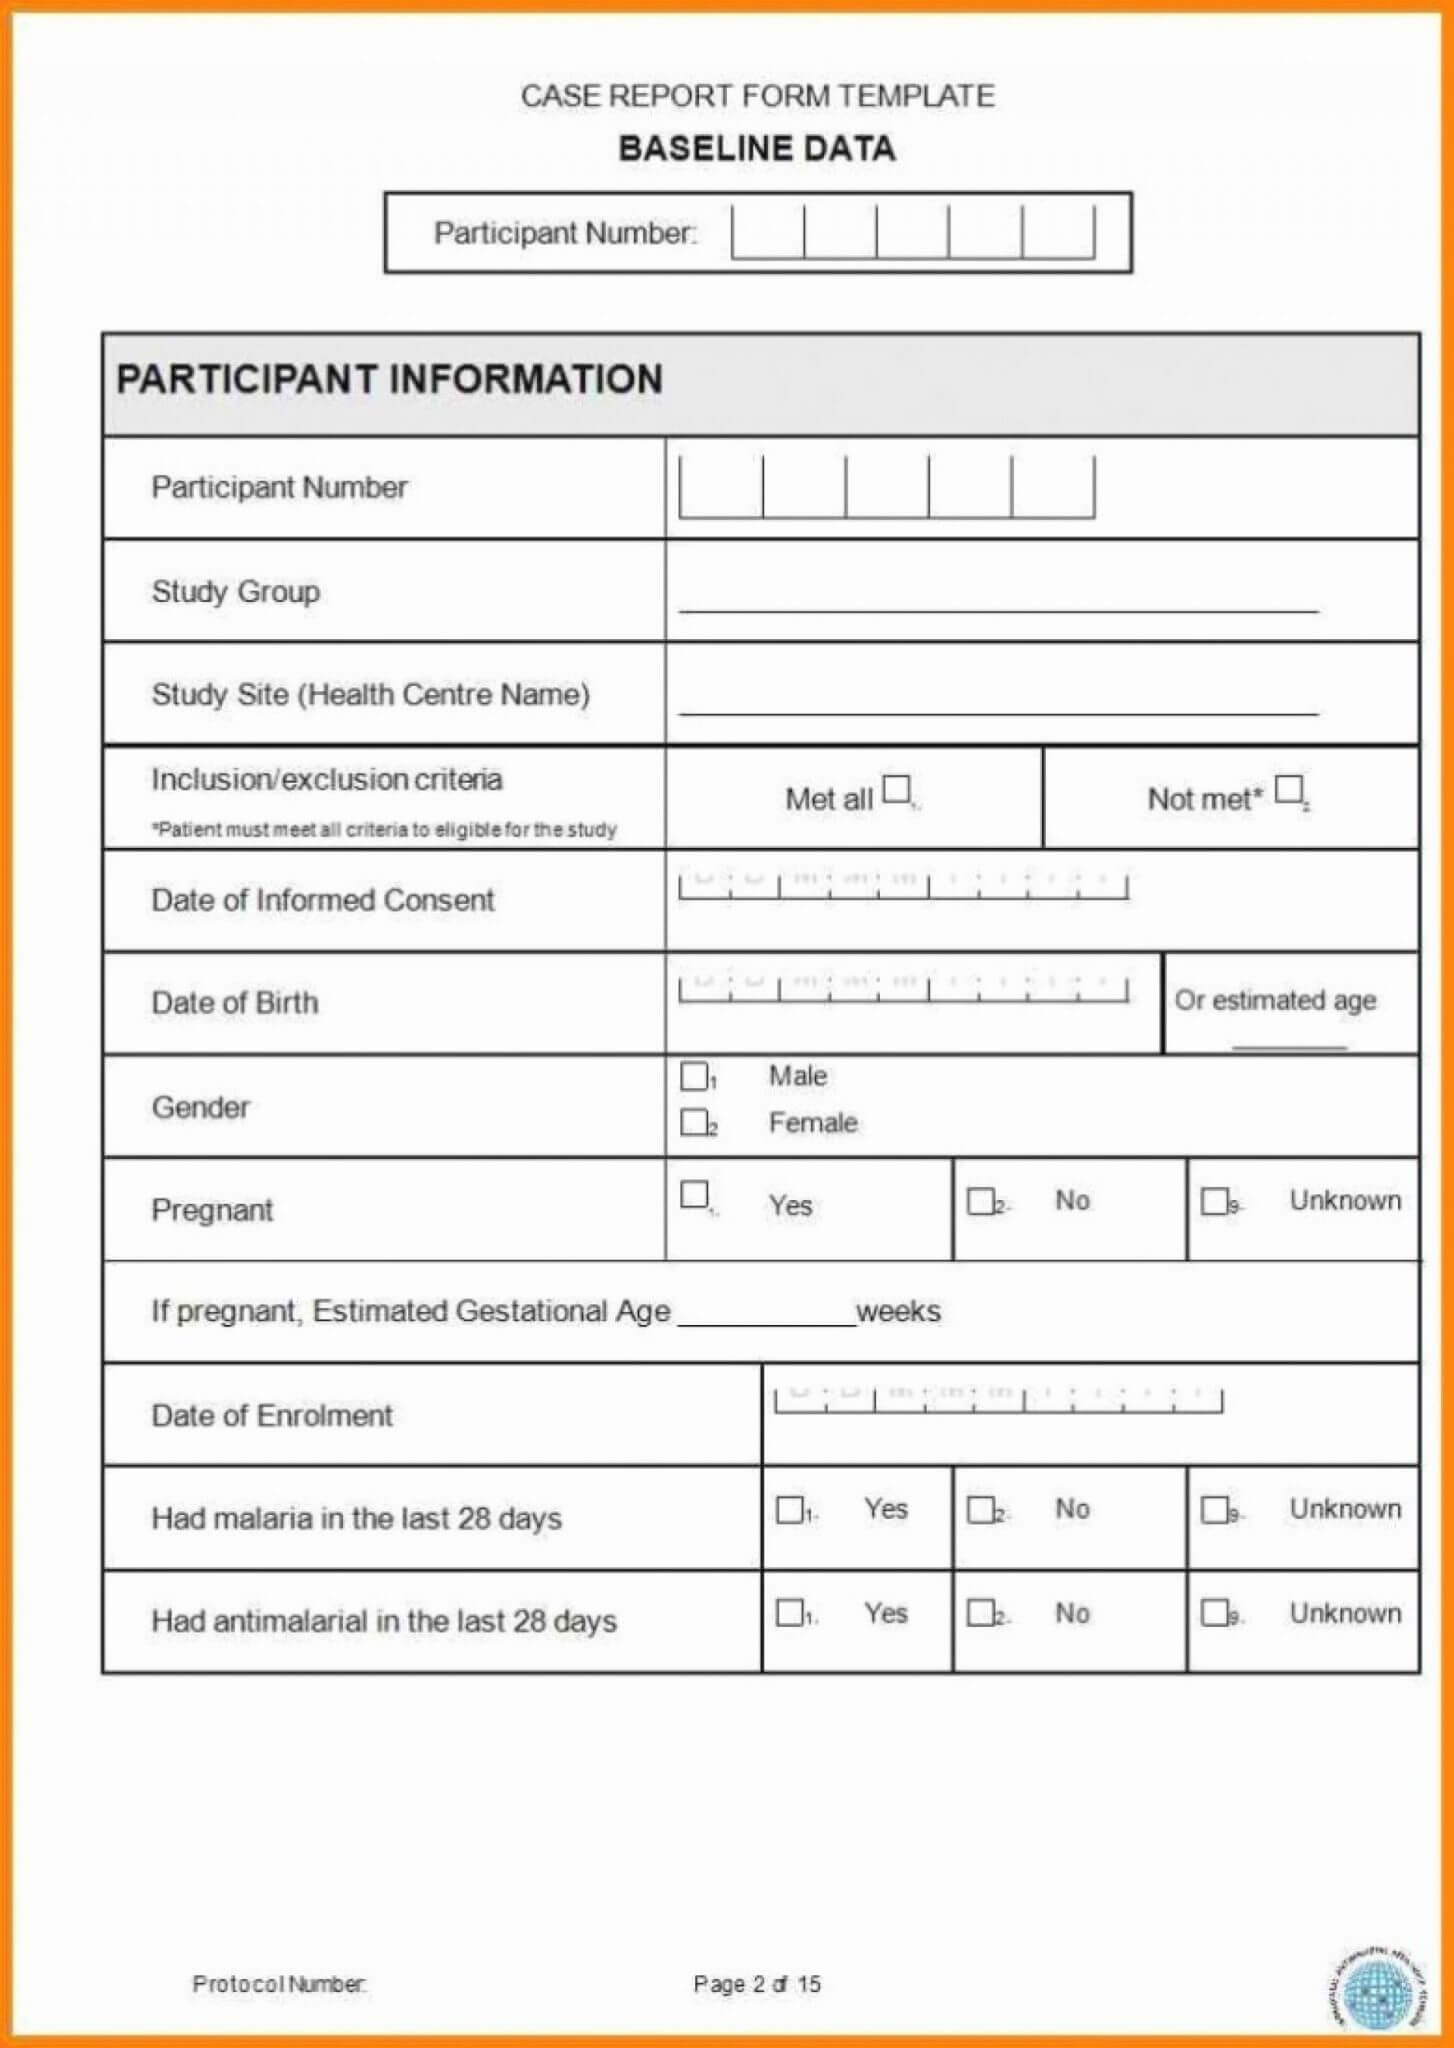 Case Report Form Template Unique Catering Resume Clinical Pertaining To Case Report Form Template